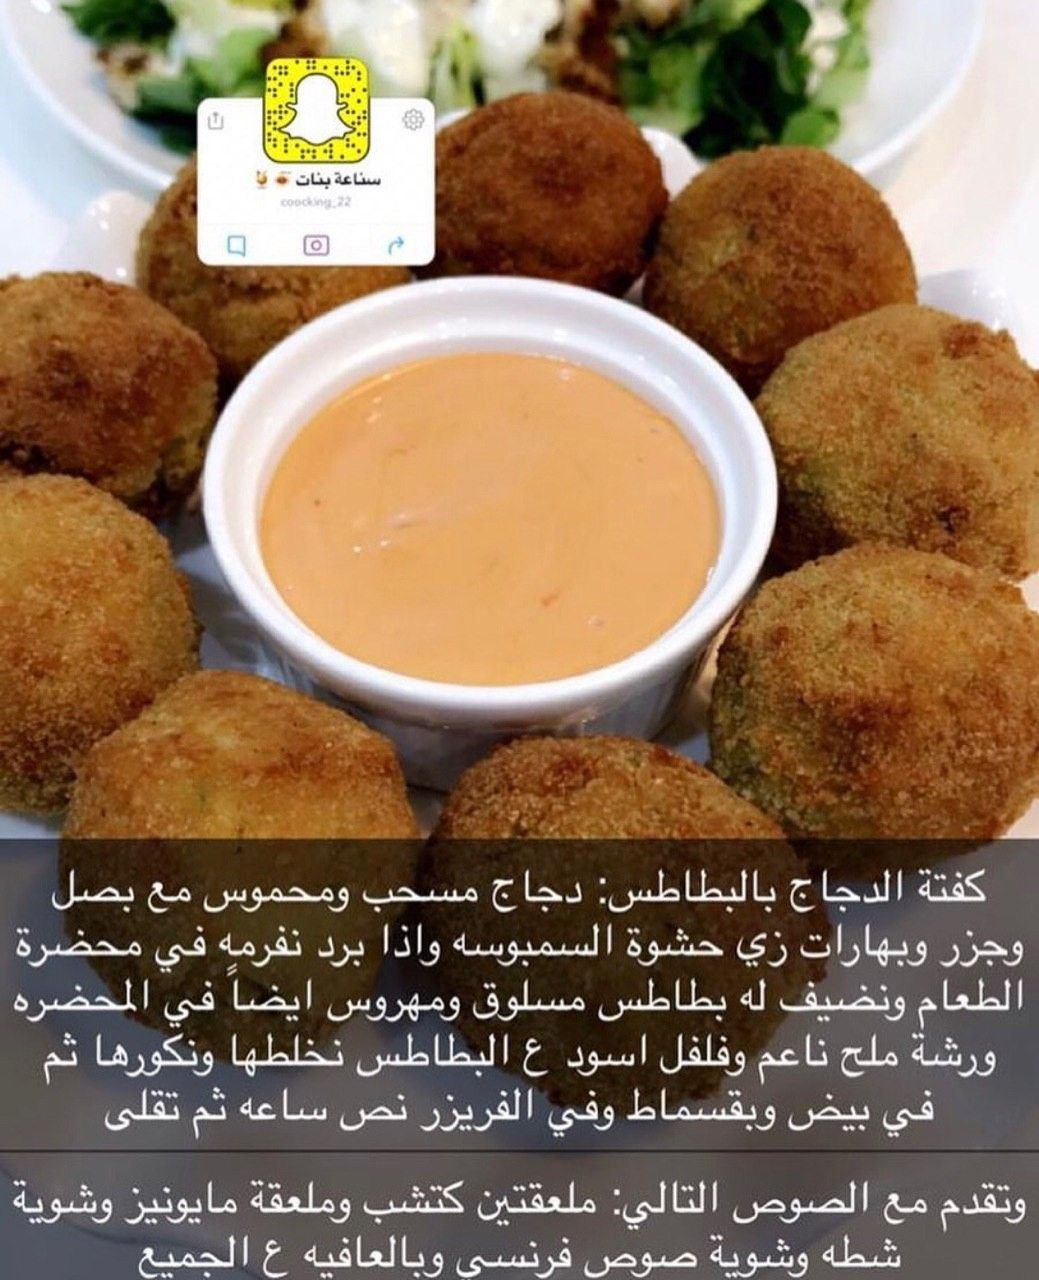 Pin By Samia700 On Recepies Cookout Food Food Receipes Save Food